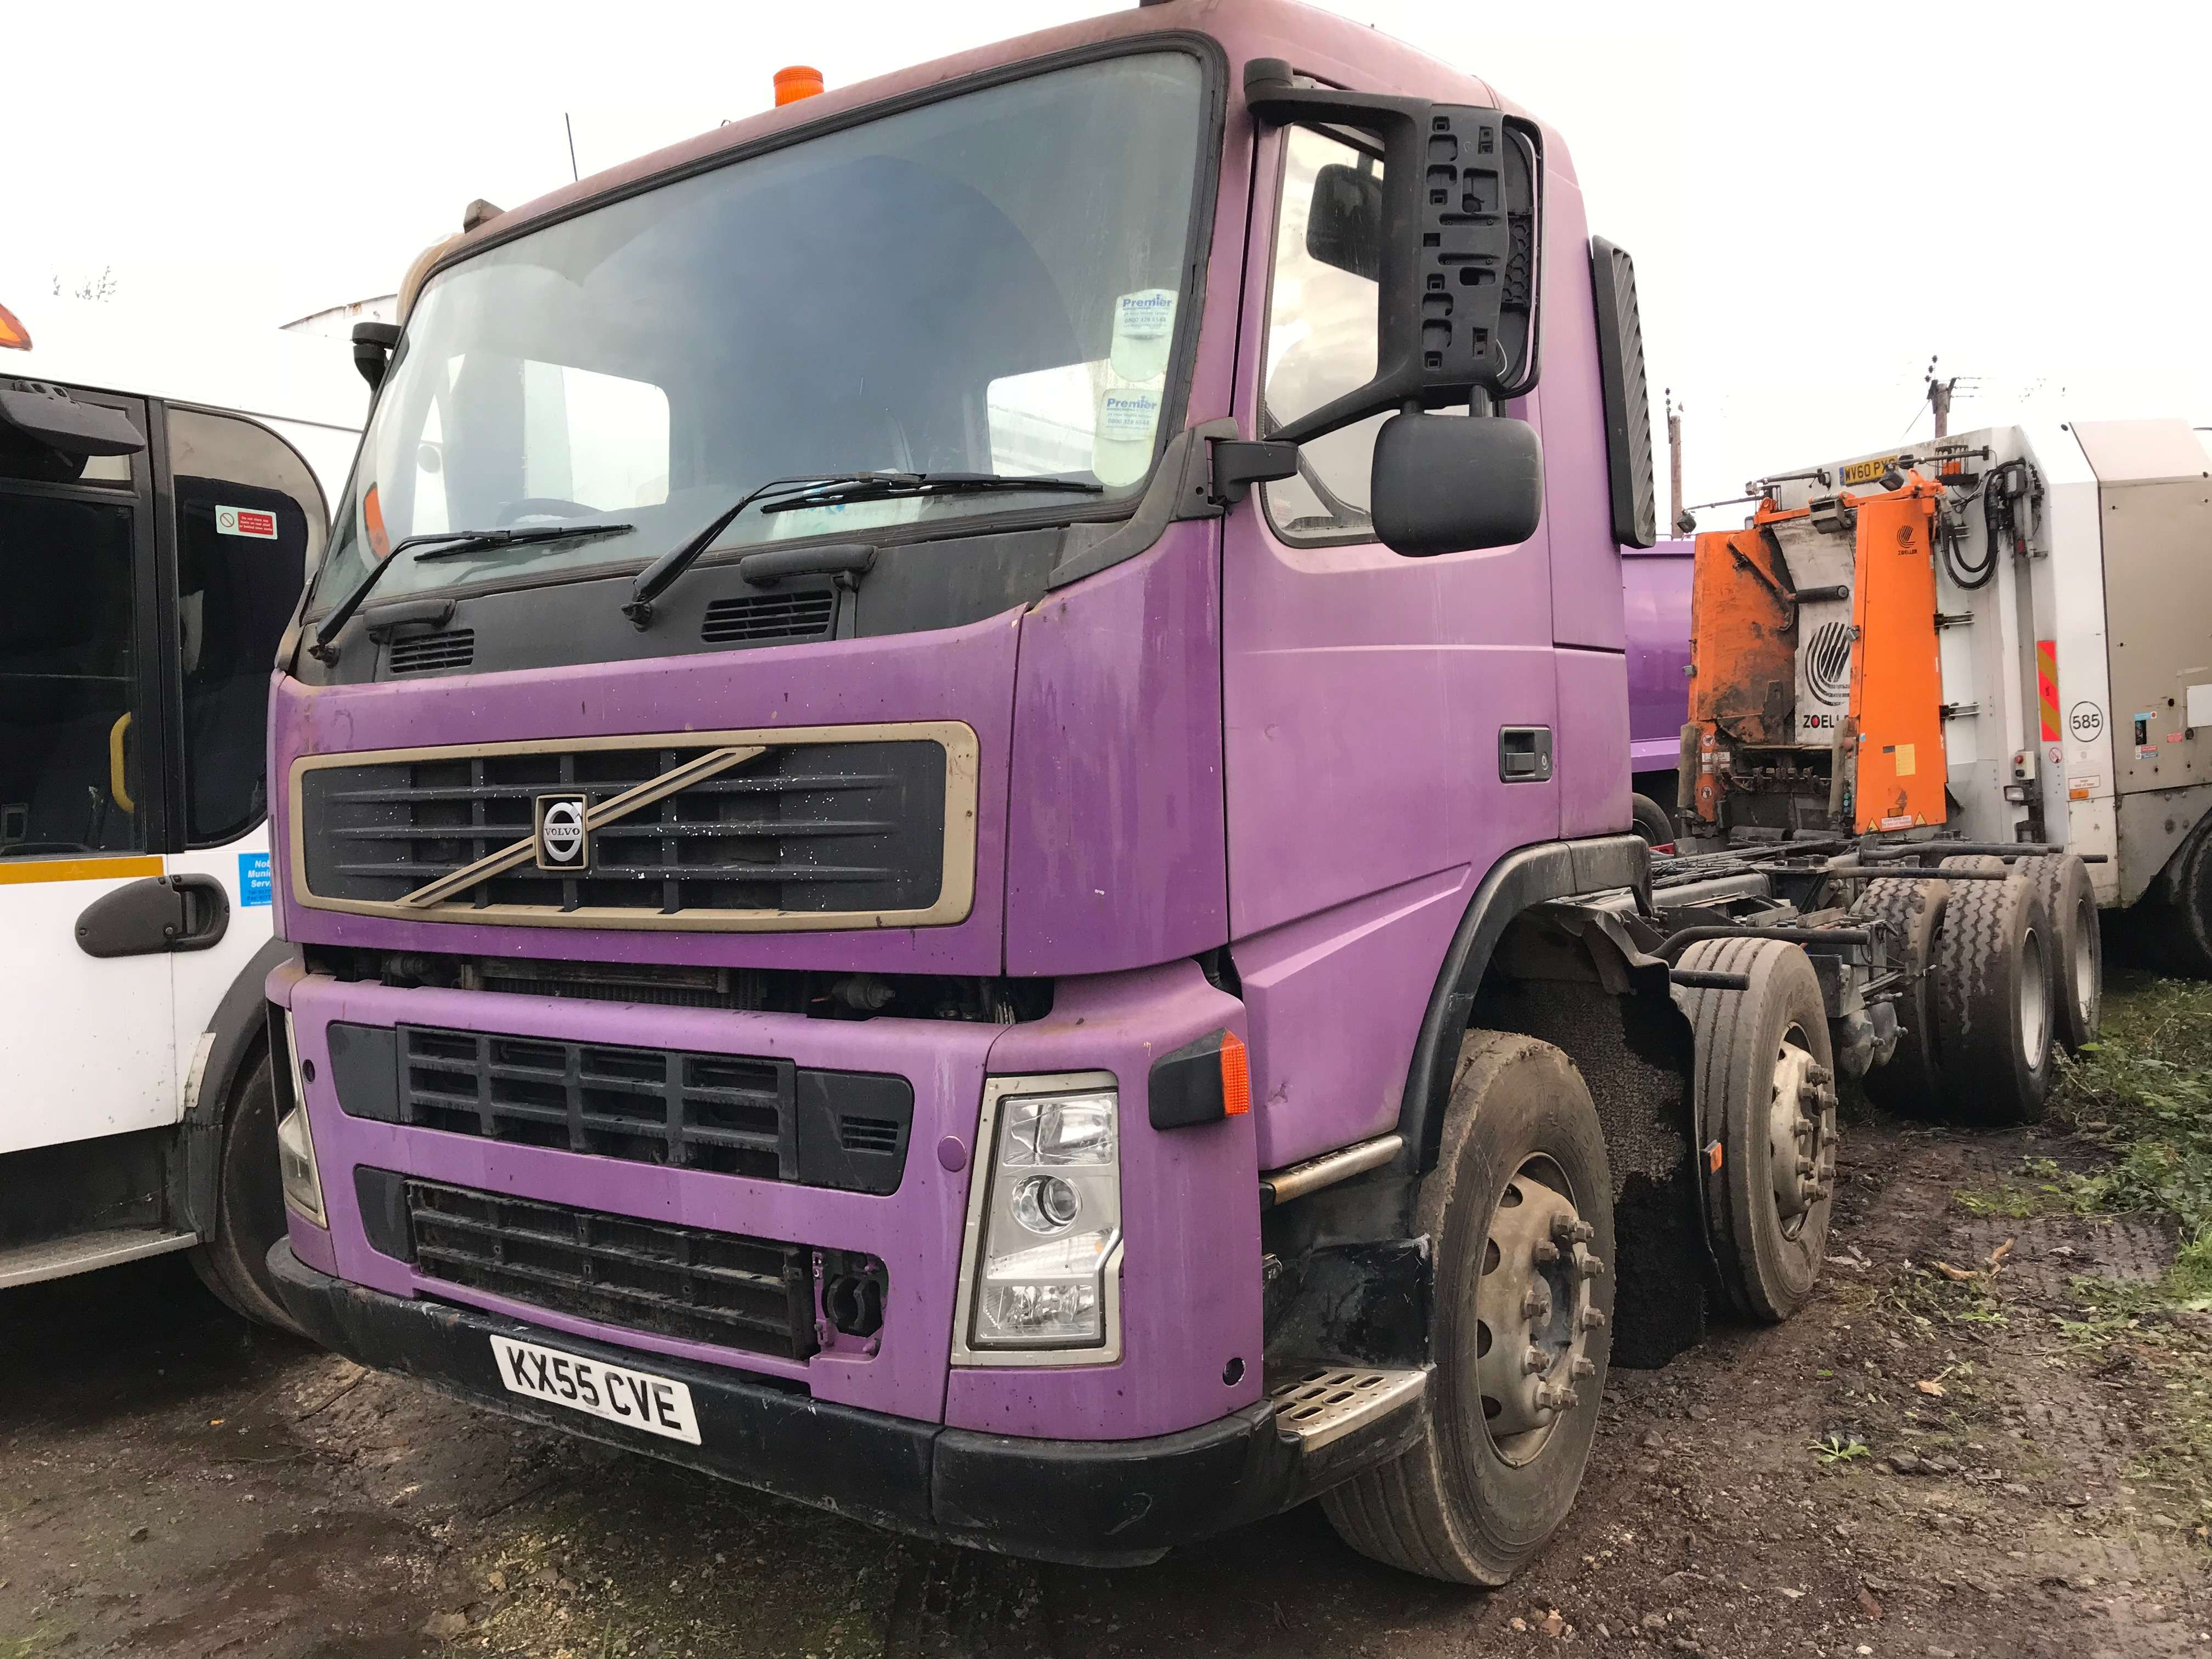 2005 Volvo FM12.340 8x4 chassis cab truck for sale 3